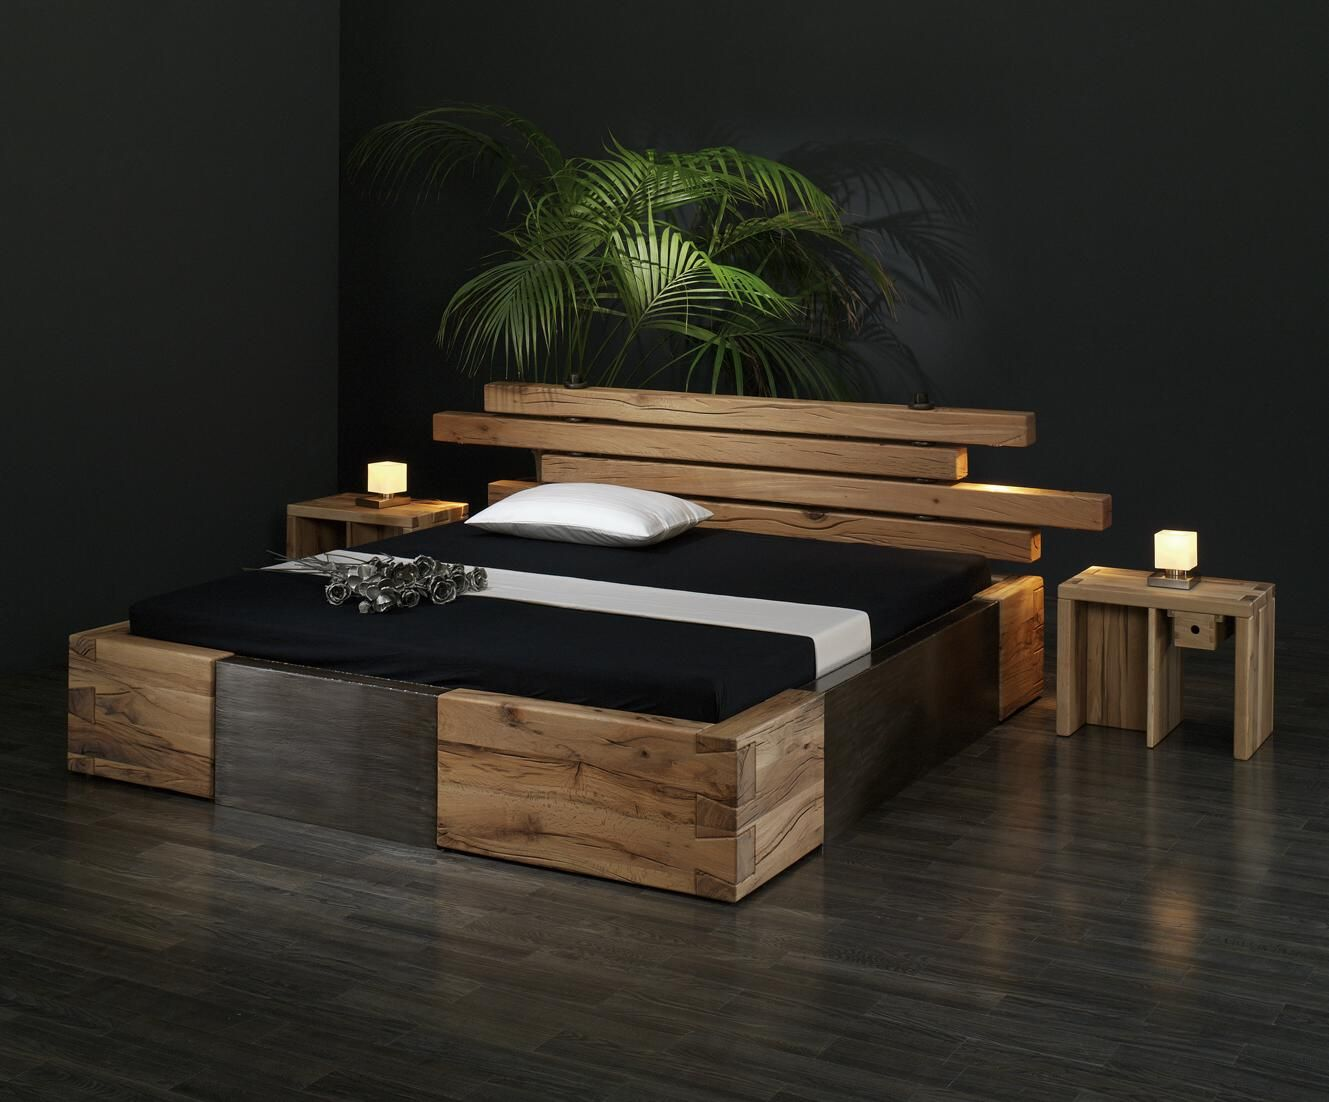 Holz Bett Design   Google Search